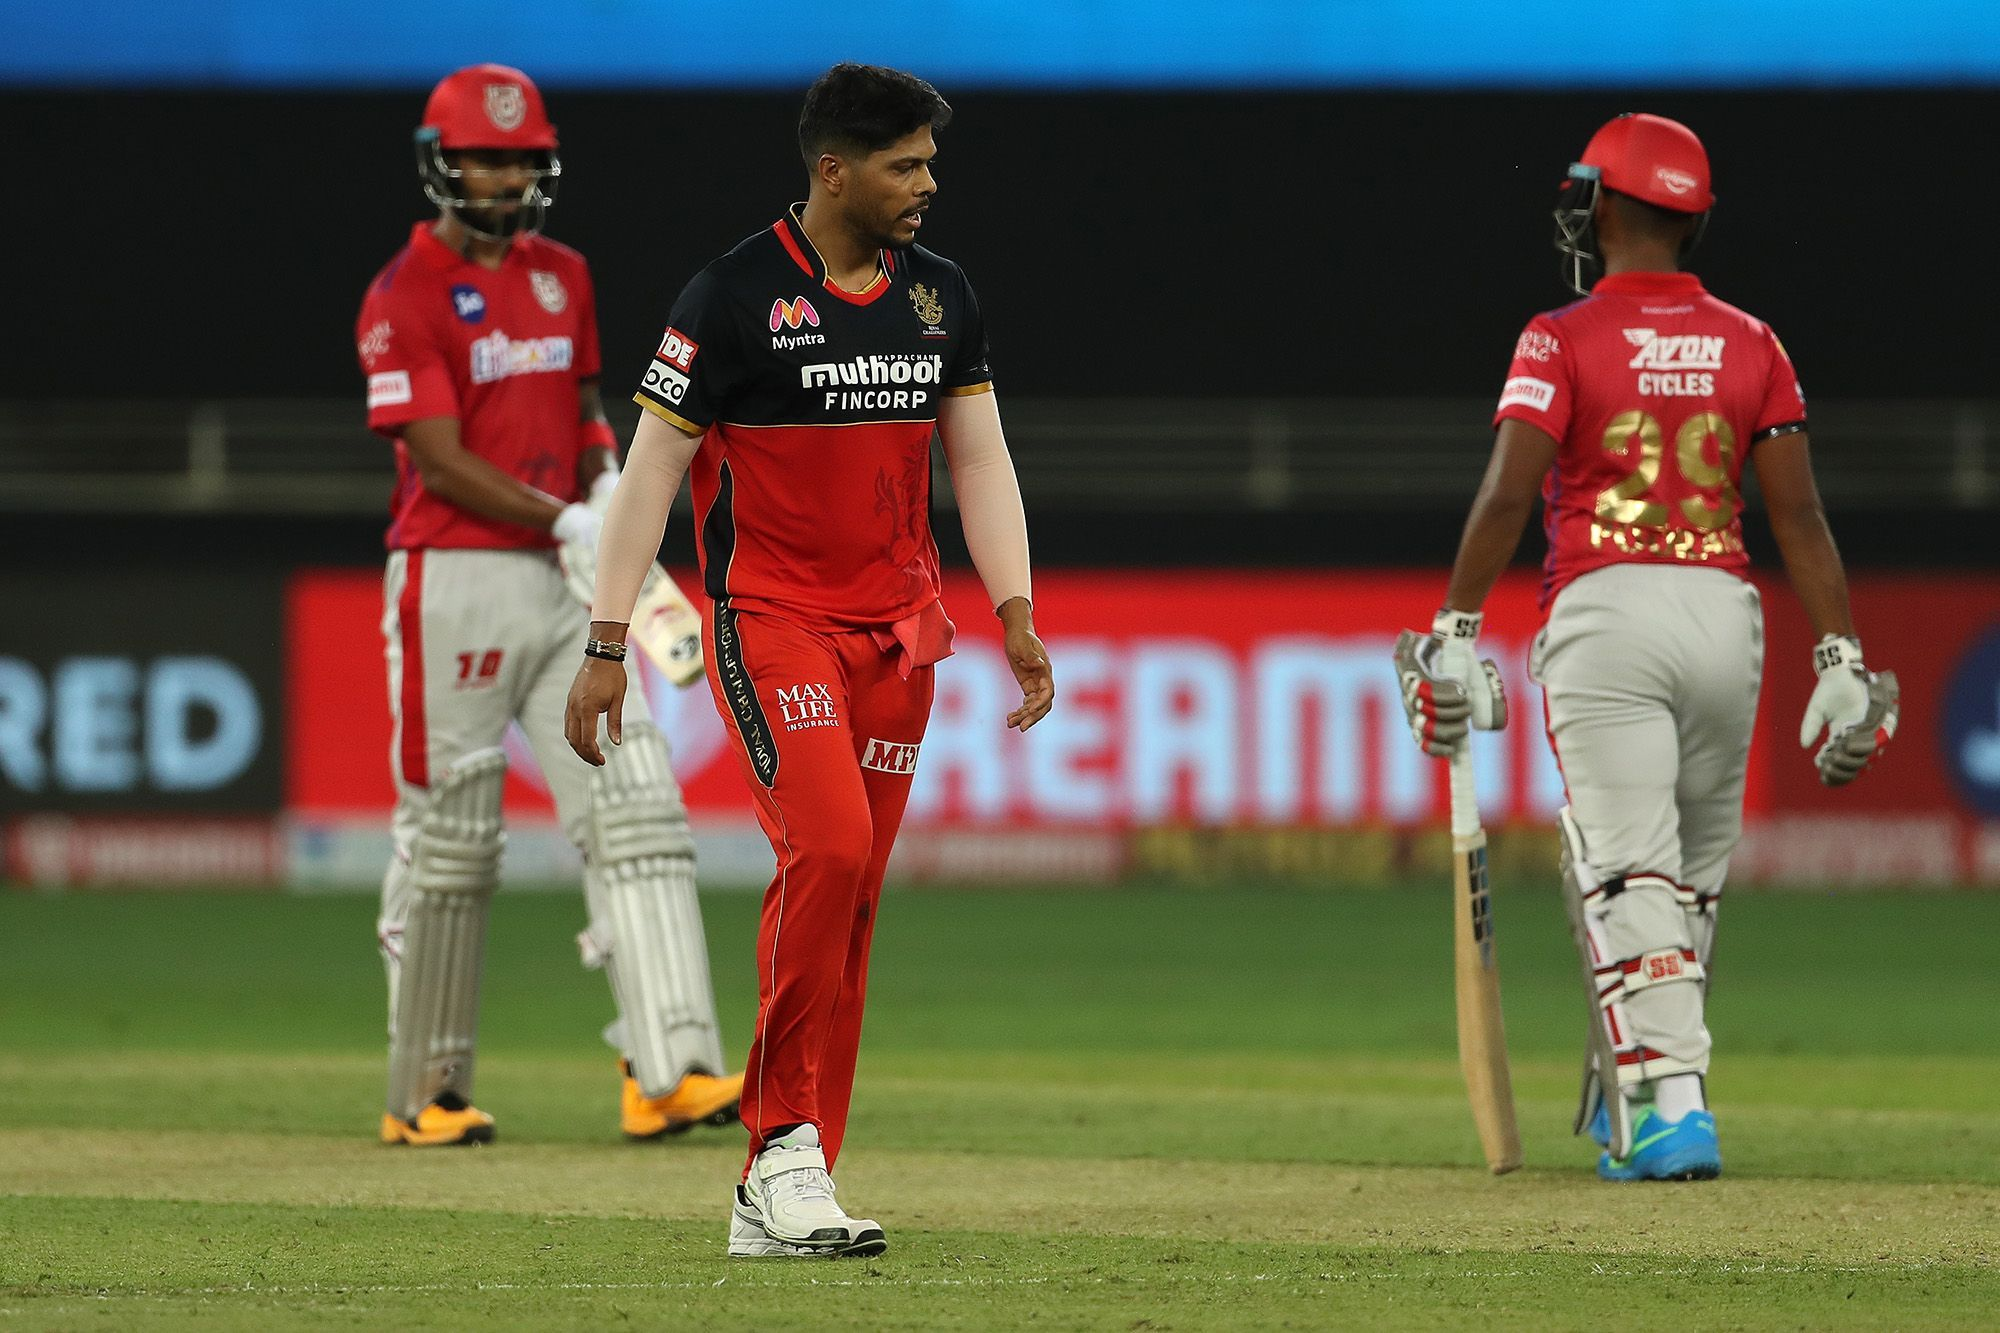 Twitter goes berserk as Umesh Yadav delivers possibly the worst ball of the decade